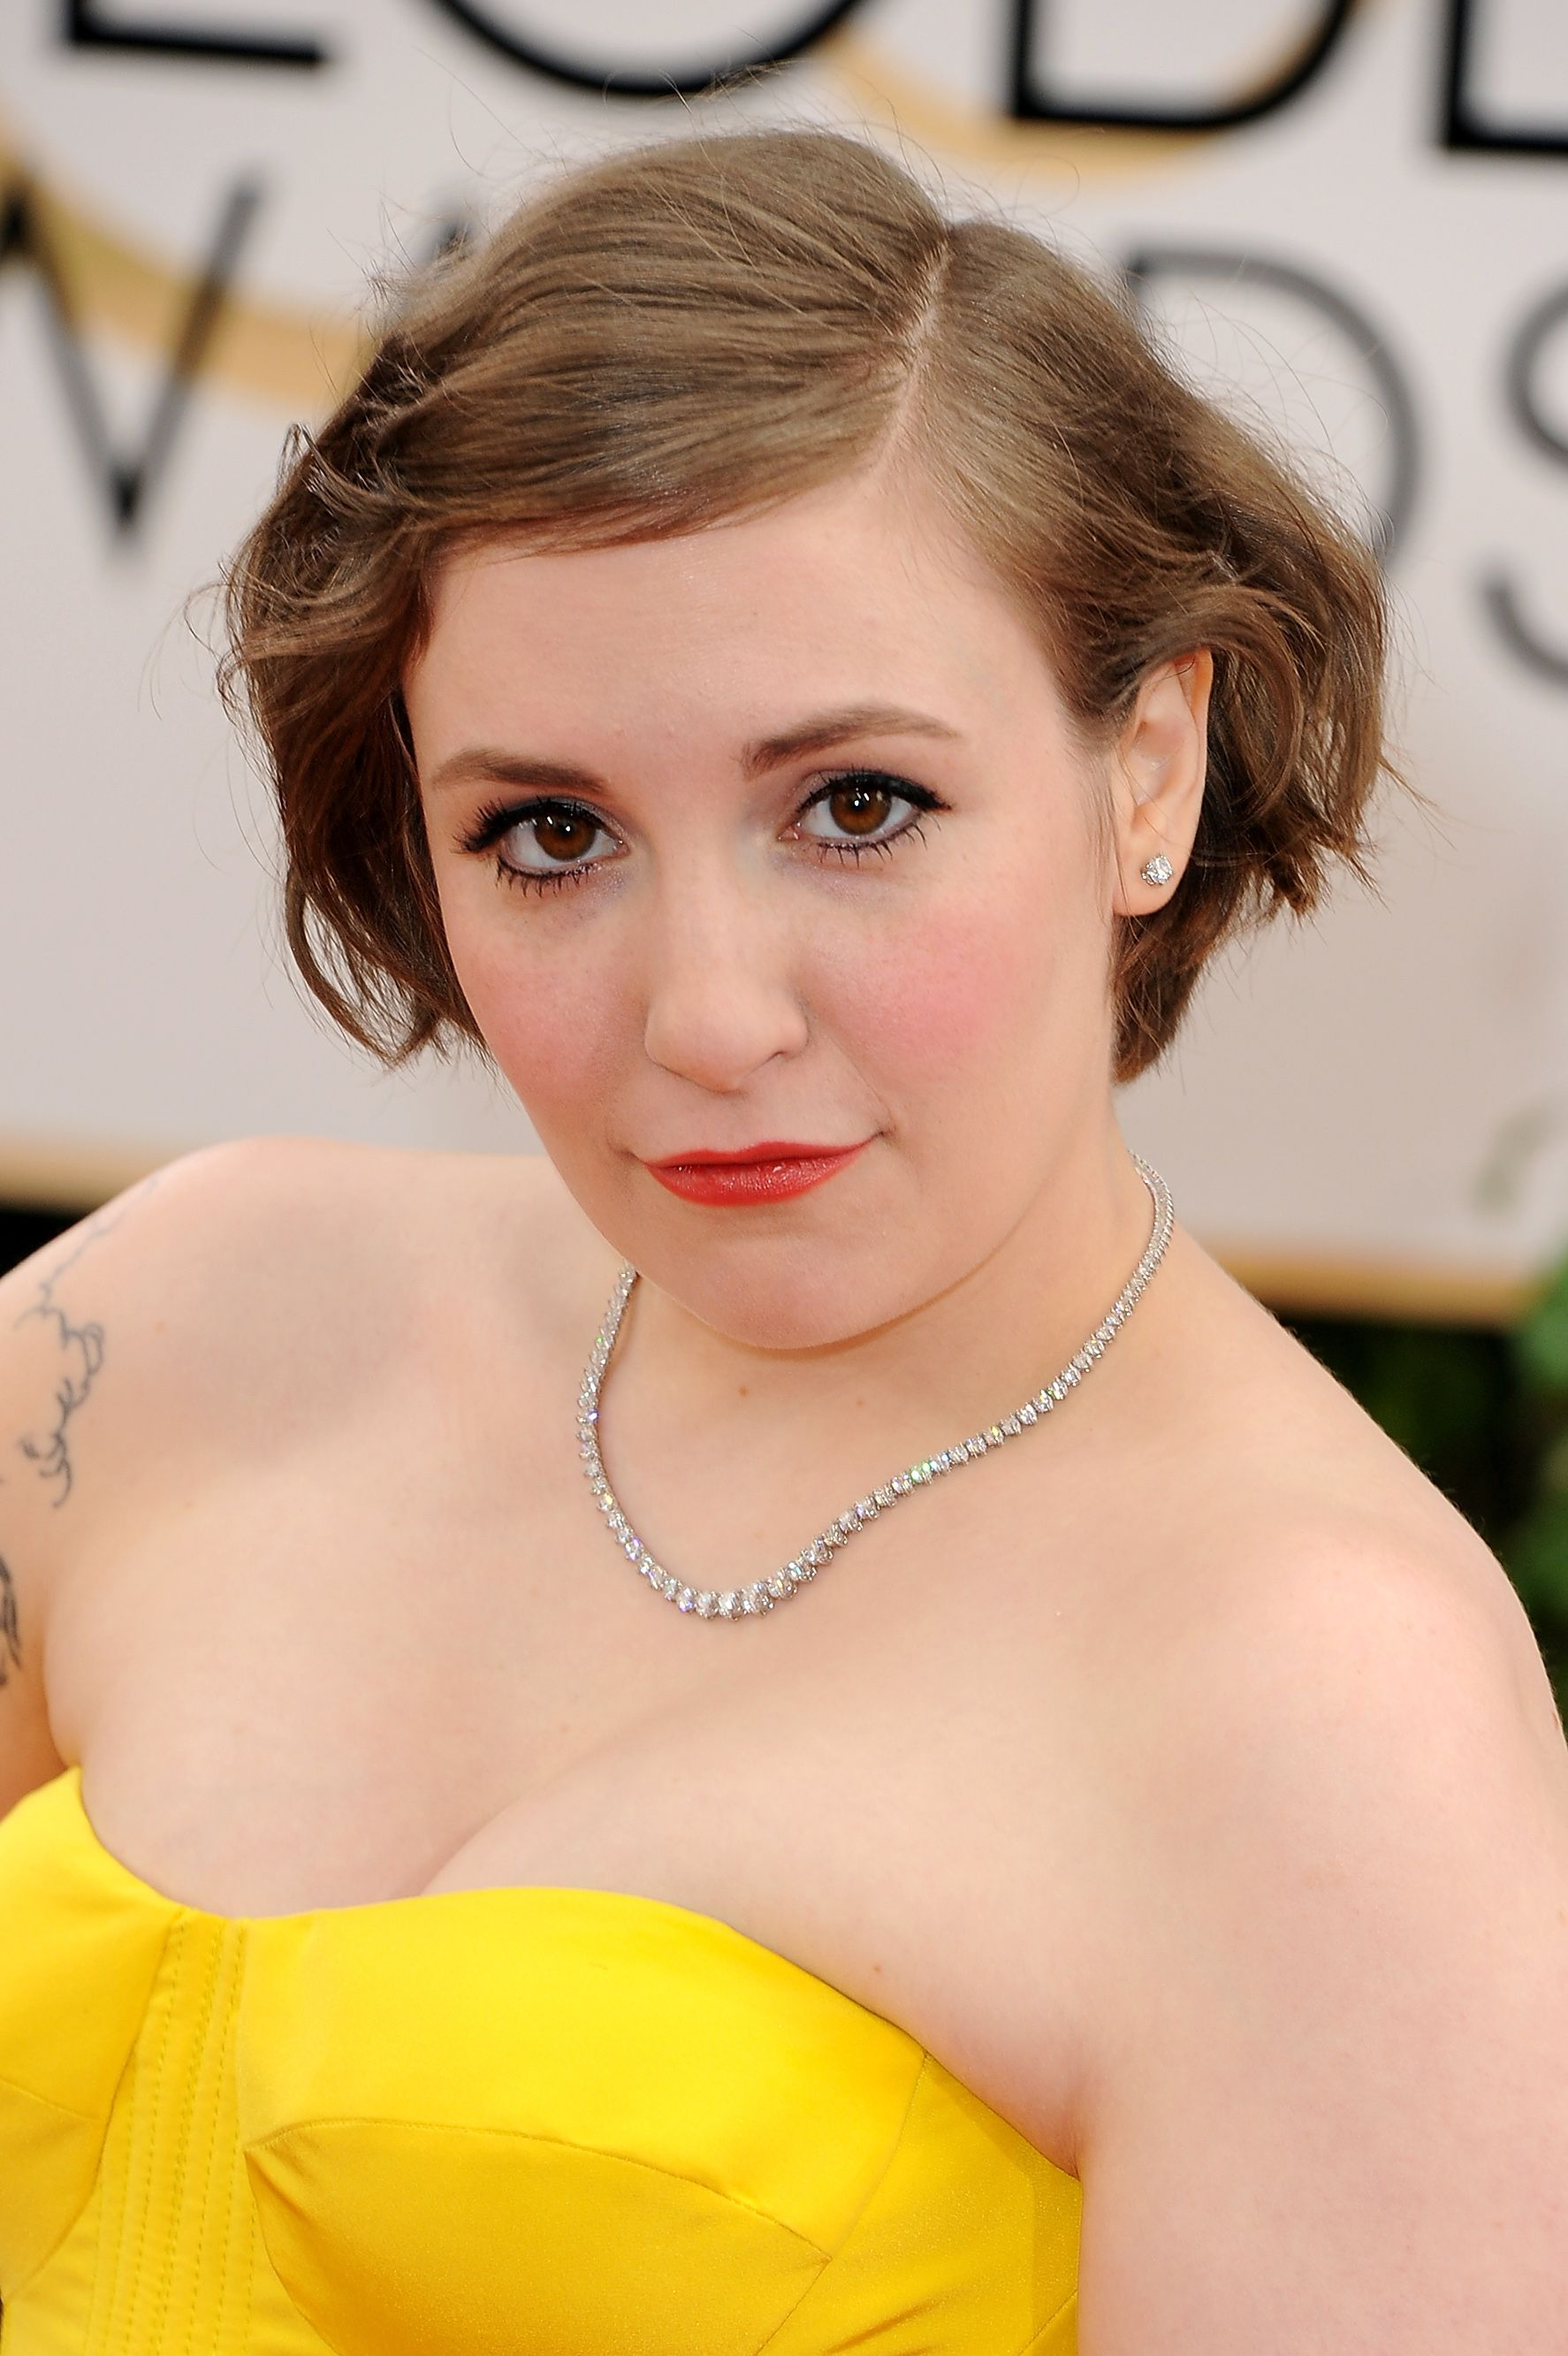 Edgy no more what do you think of lena dunham going gamine girls